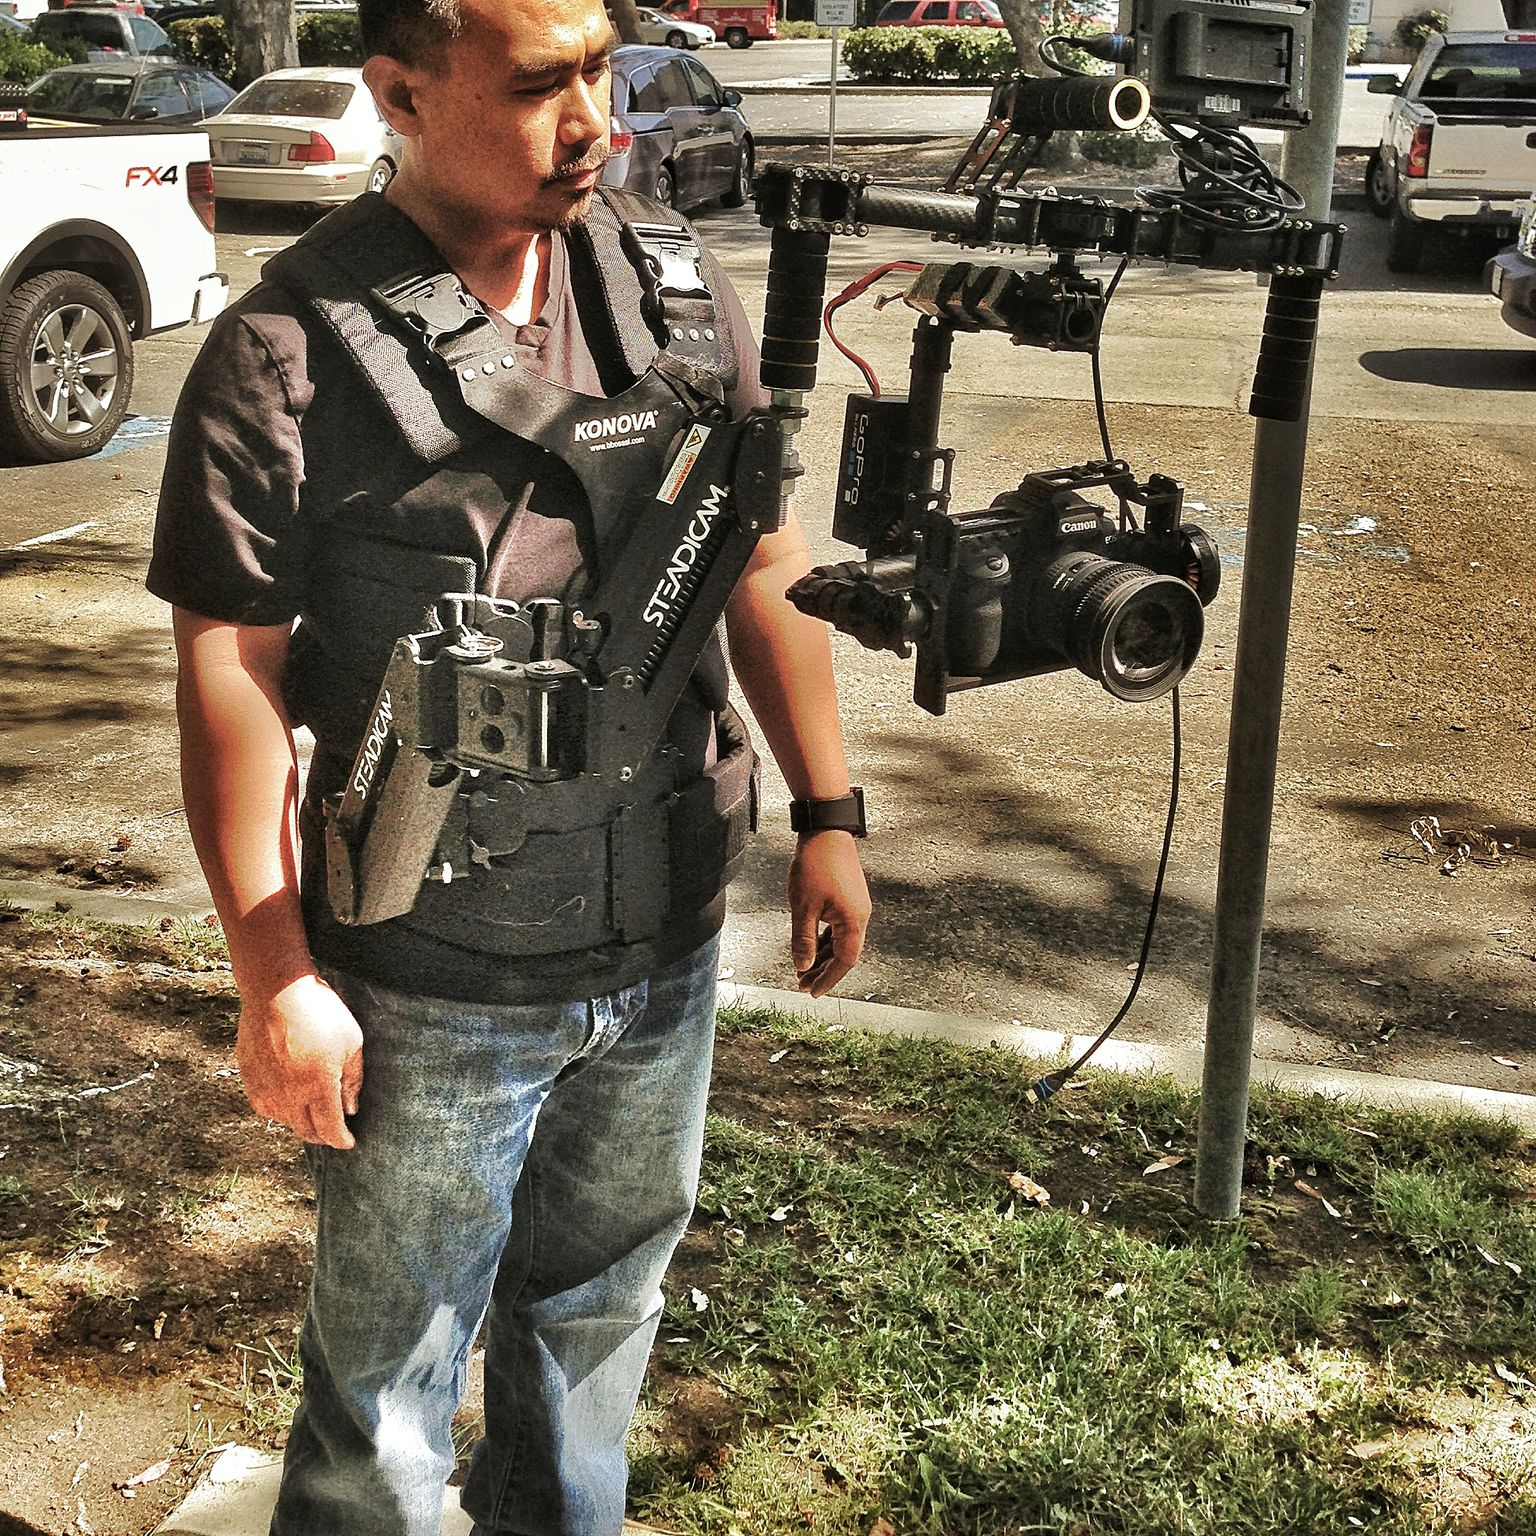 Steadicam Merlin Vest with CAME 7000 3 Axis Gimbal